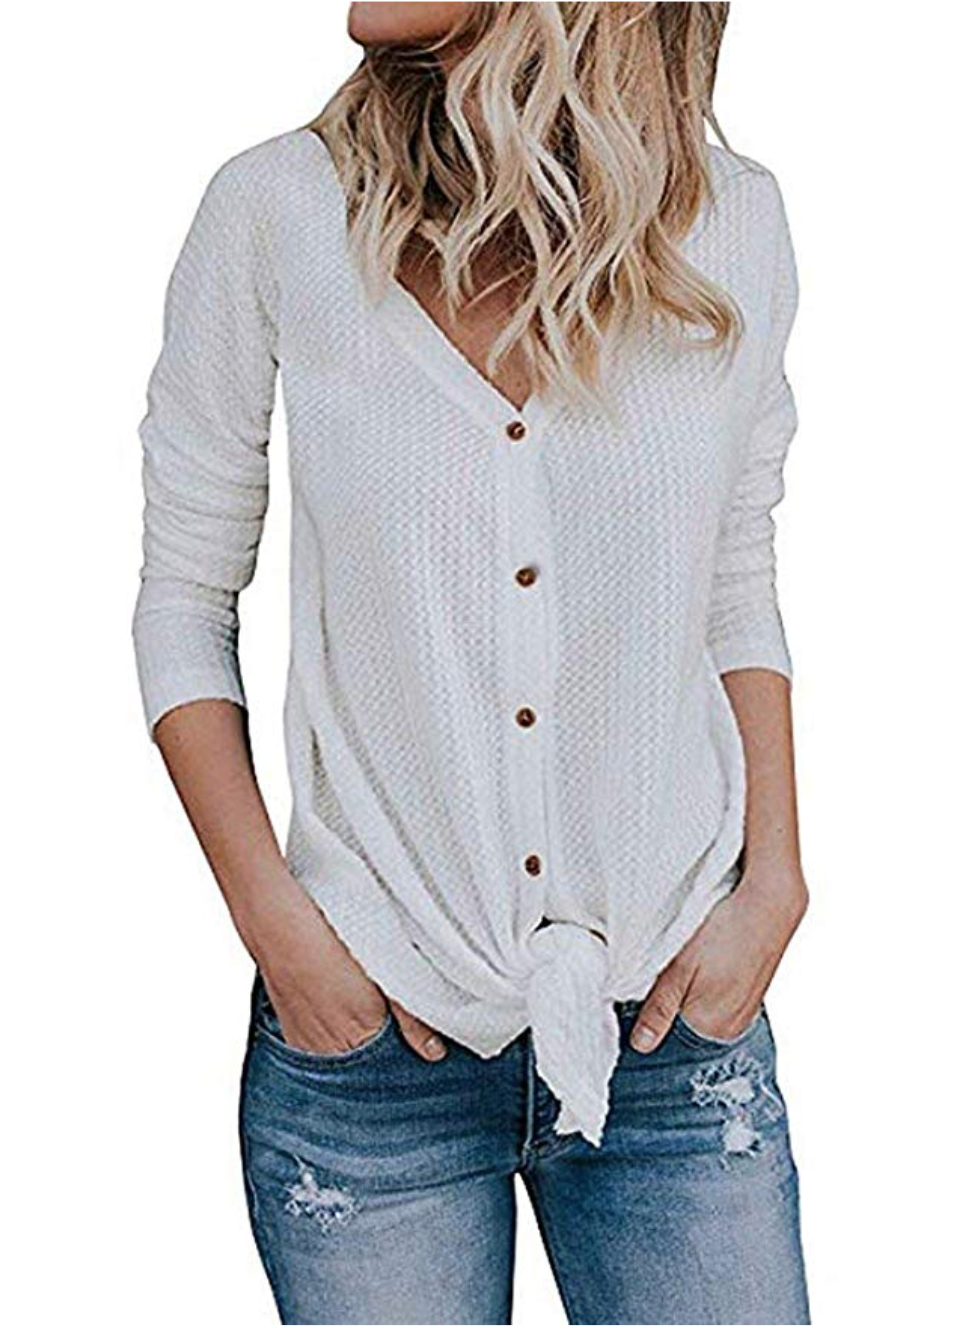 6f15850571760f Button-Up Waffle Knit Tie Top. Button-Up Waffle Knit Tie Top Cardigan  Sweaters ...